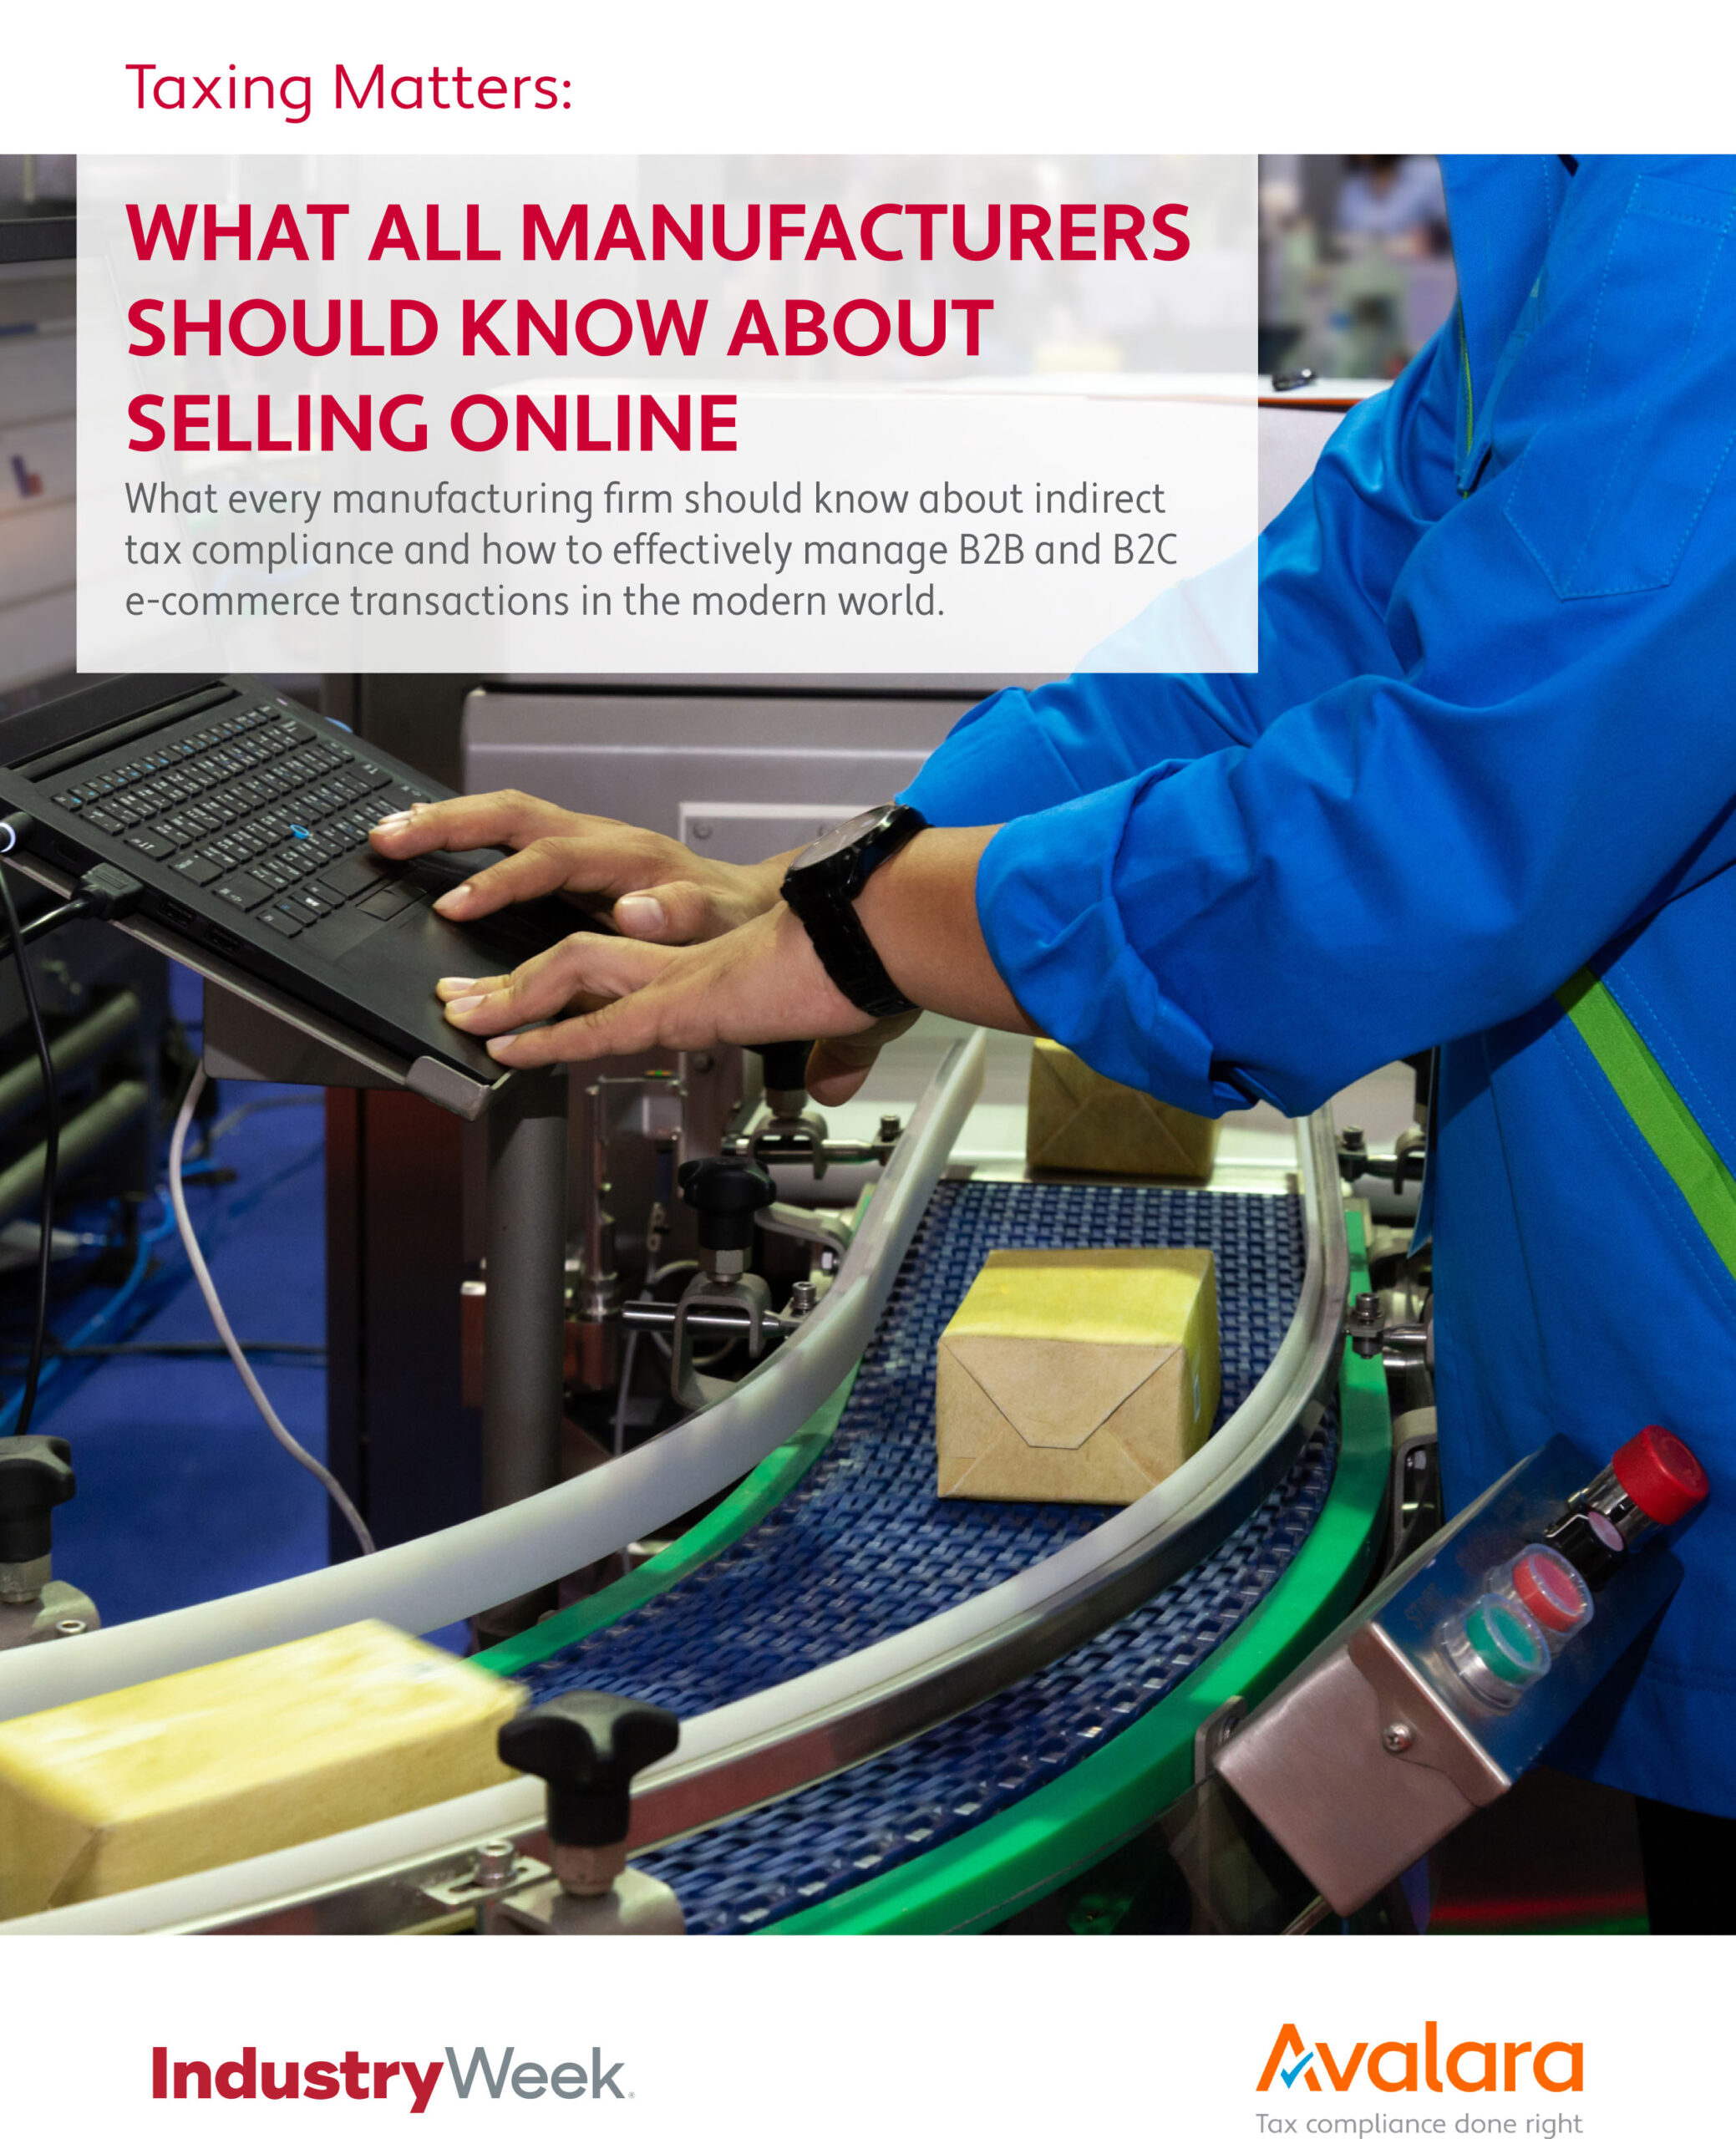 WHAT ALL MANUFACTURERS SHOULD KNOW ABOUT SELLING ONLINE